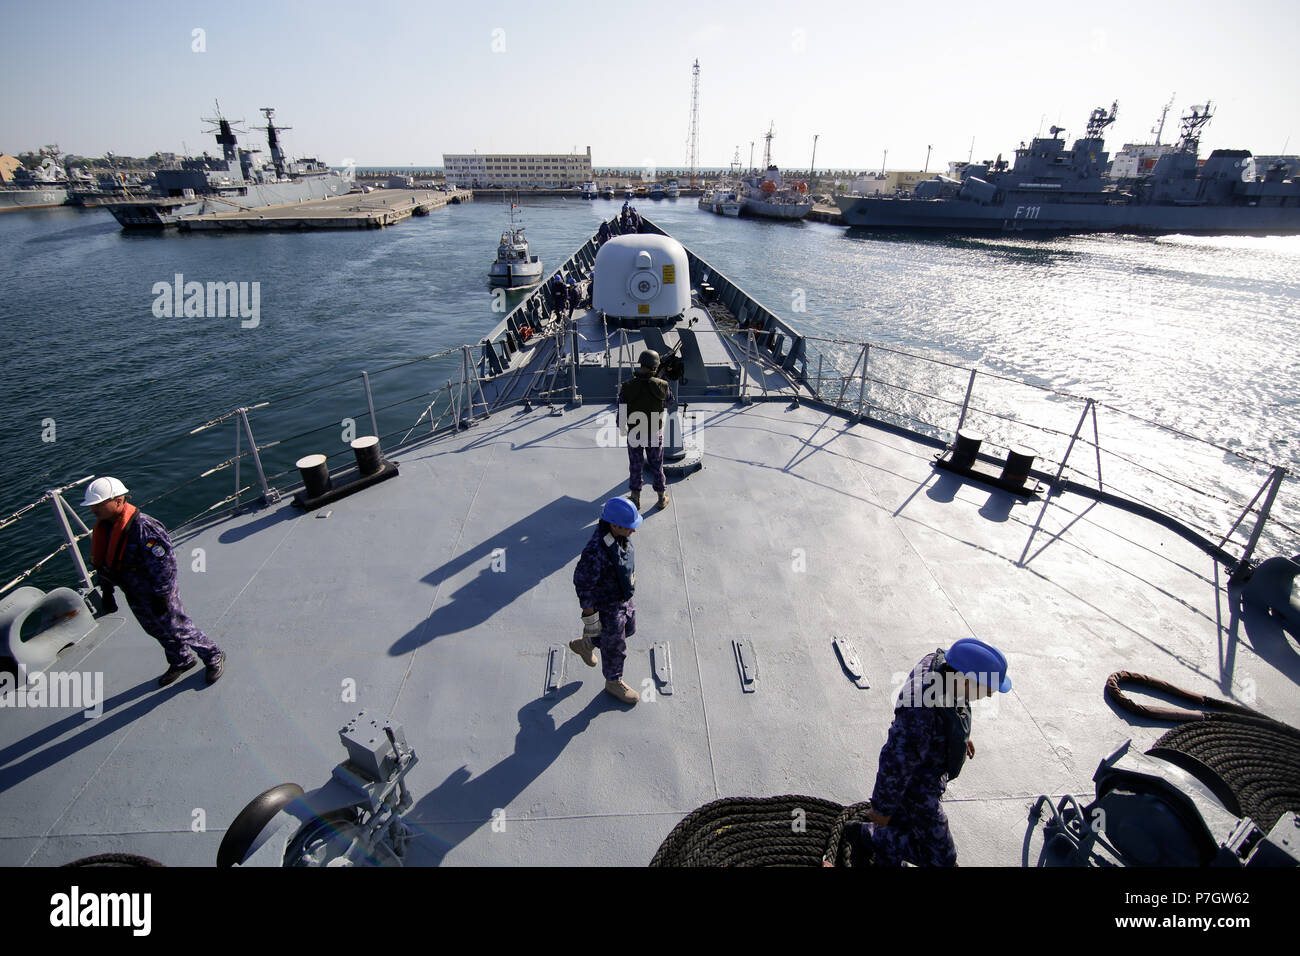 CONSTANTA, ROMANIA - JUNE 20, 2018: Romanian military sailors on deck of 'Regele Ferdinand' frigate, on June 20. - Stock Image